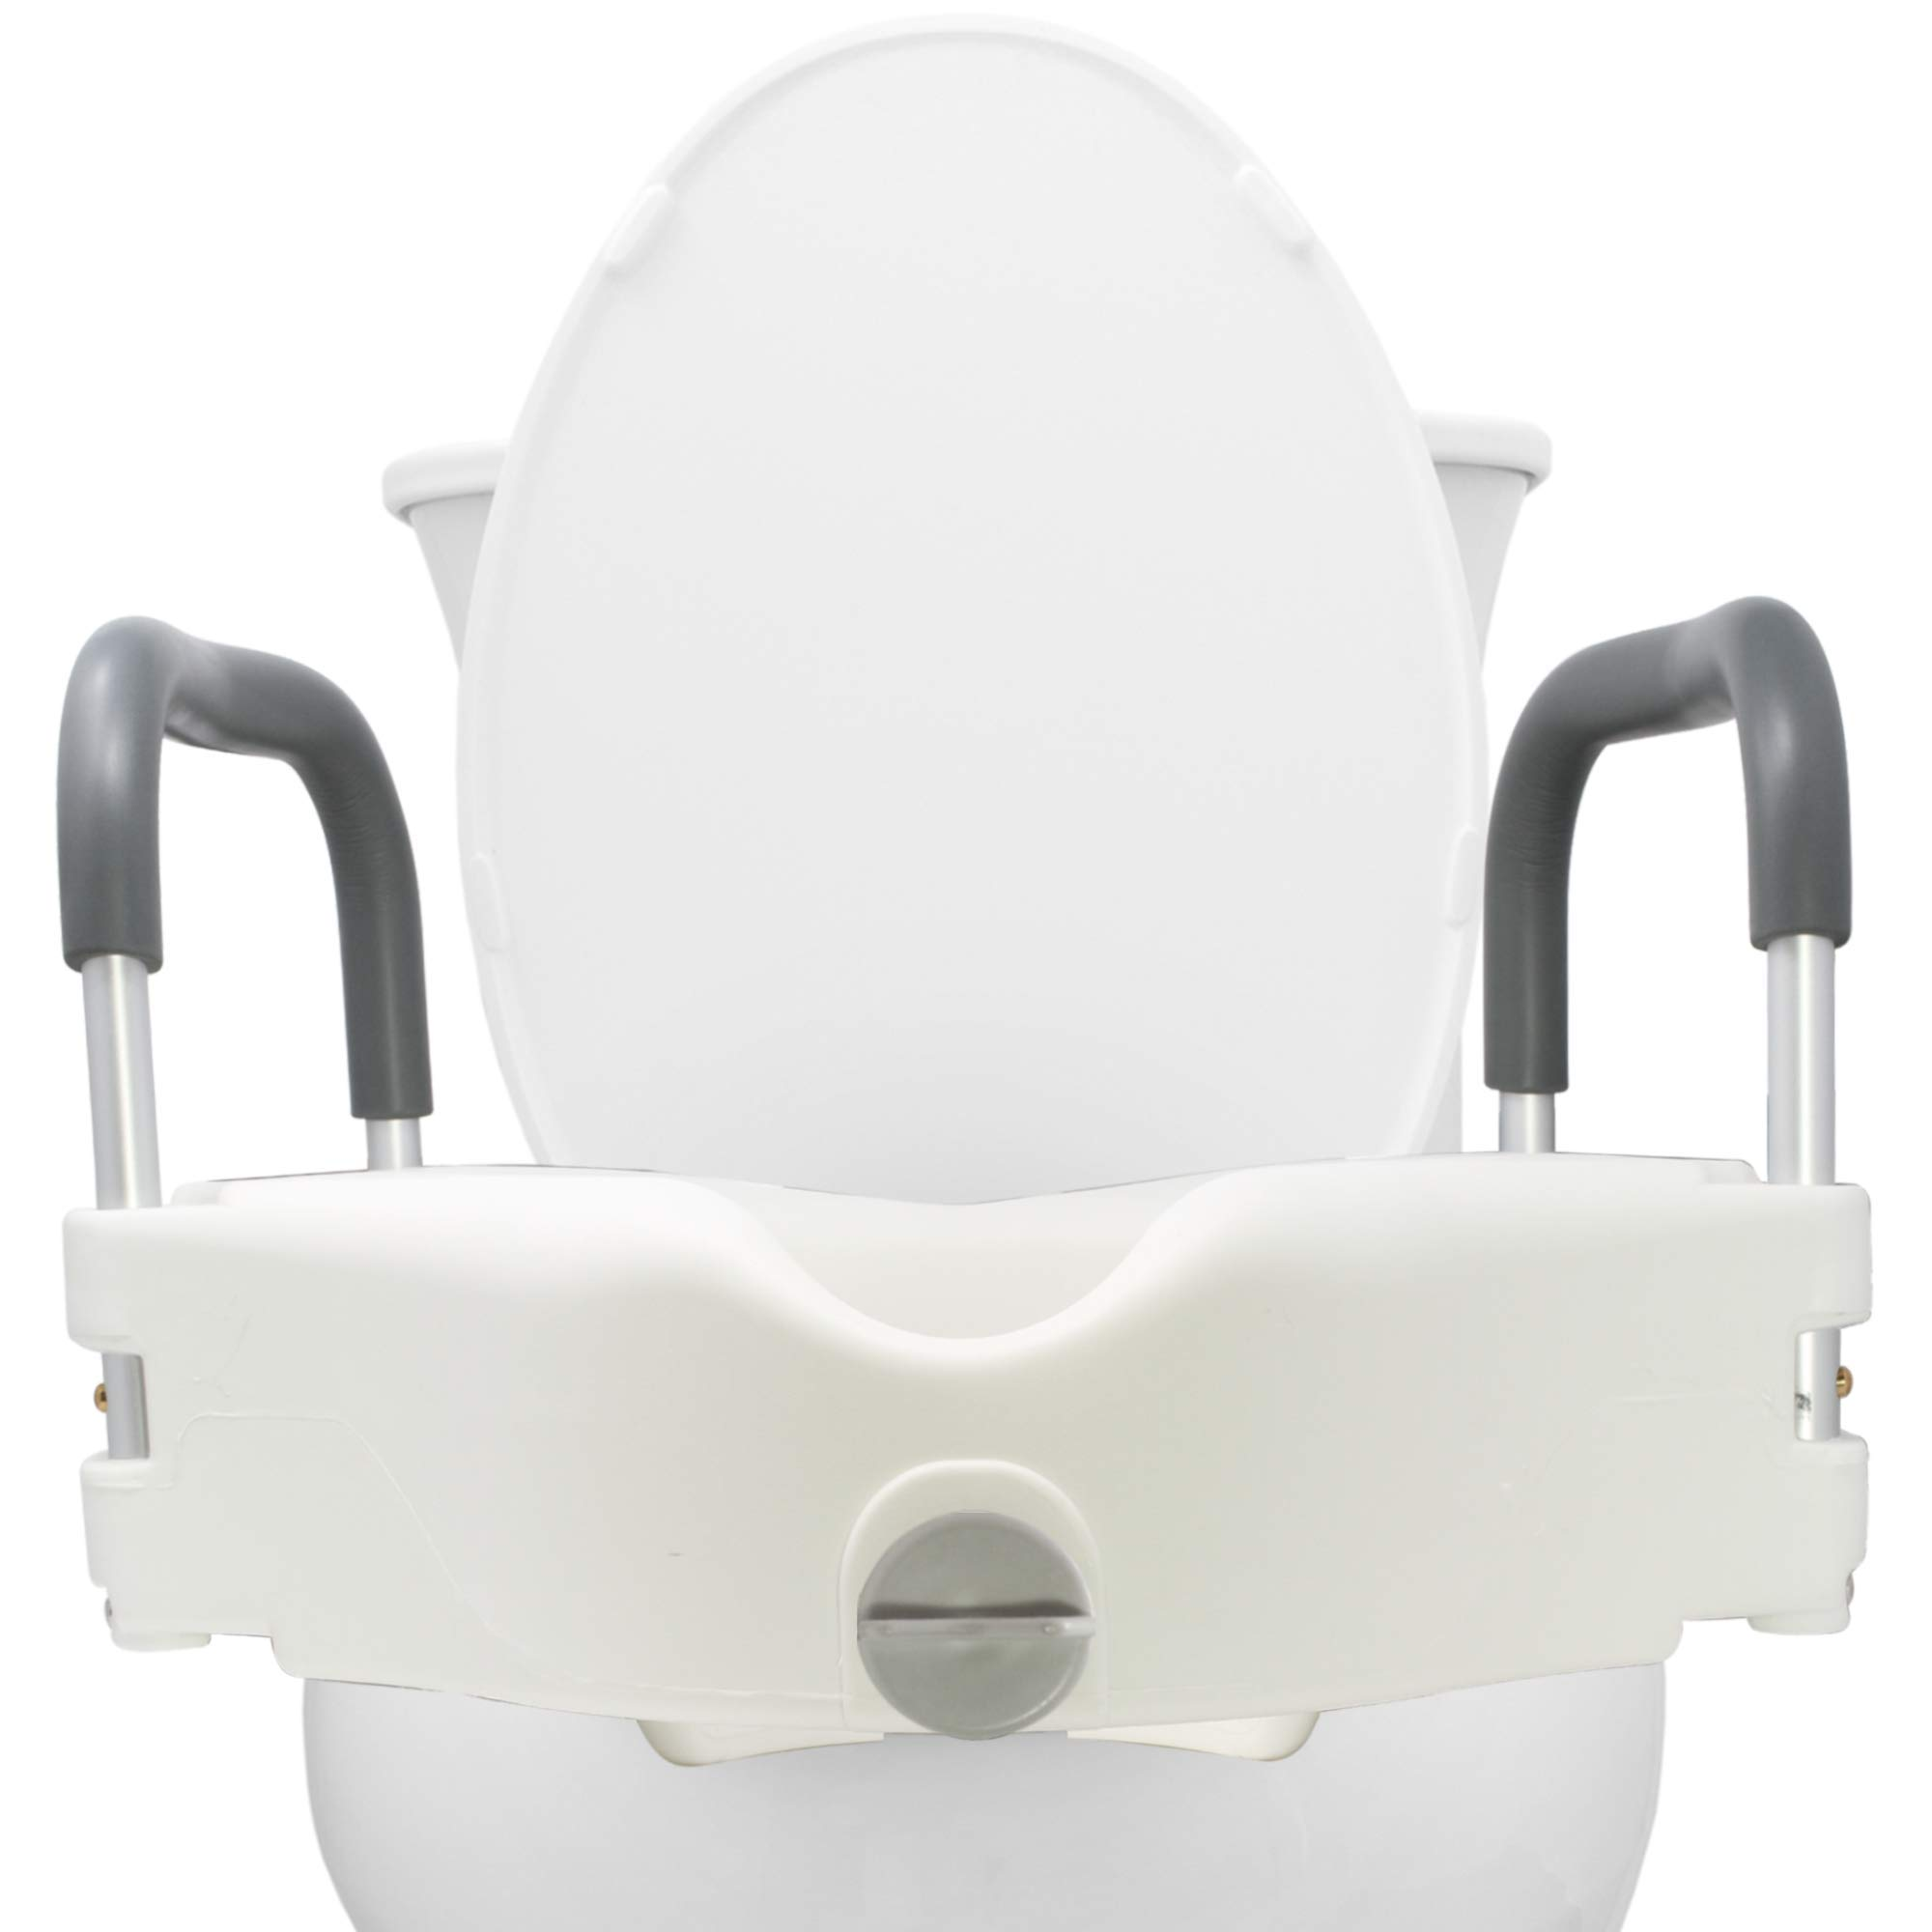 Pivit Raised Toilet Seat | Portable, Elevated Riser with Padded Grab Bar Handles | Elongated and Standard Fit Commode Lifter | Bathroom Safety Extender Assists Disabled, Elderly, Seniors, Handicapped by pivit